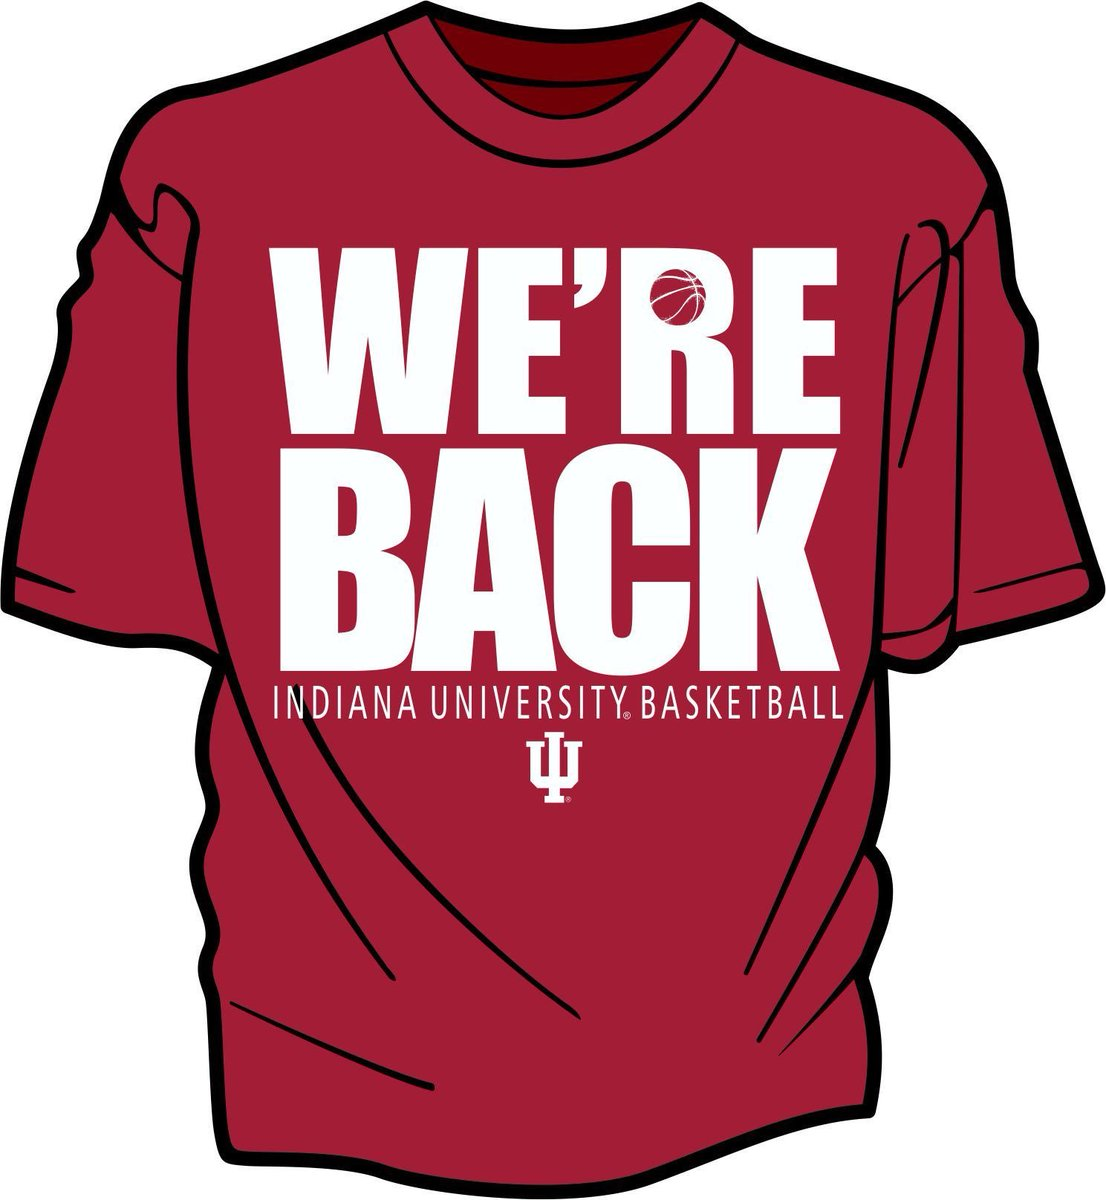 We just made a free throw!!! Get the printing press ready let's make these shirts again!!!!!